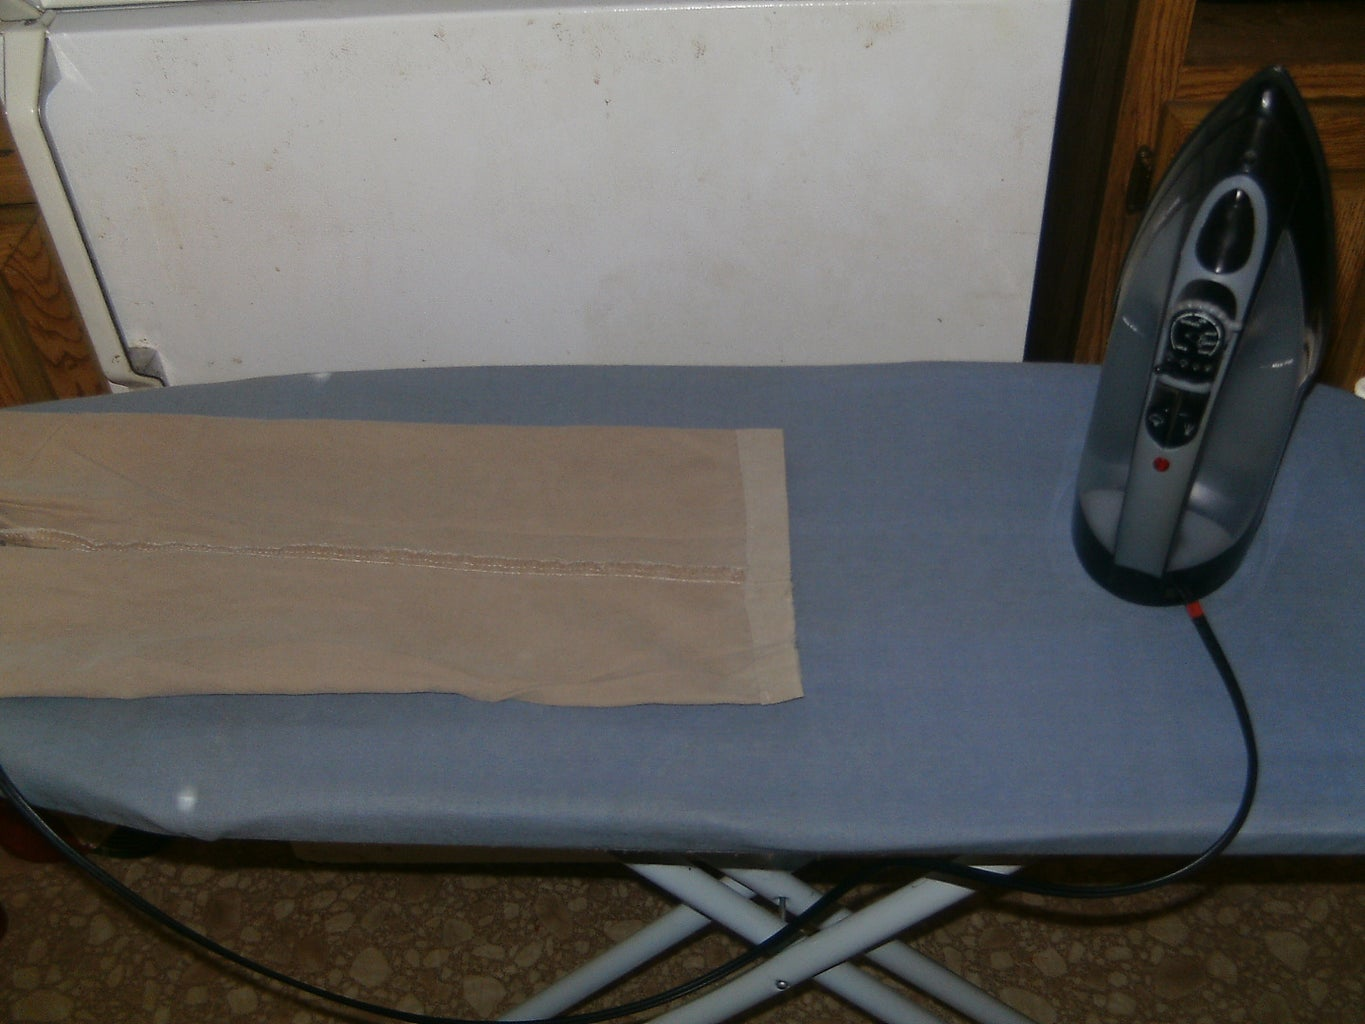 Prepping the Fabric / Heating the Tape